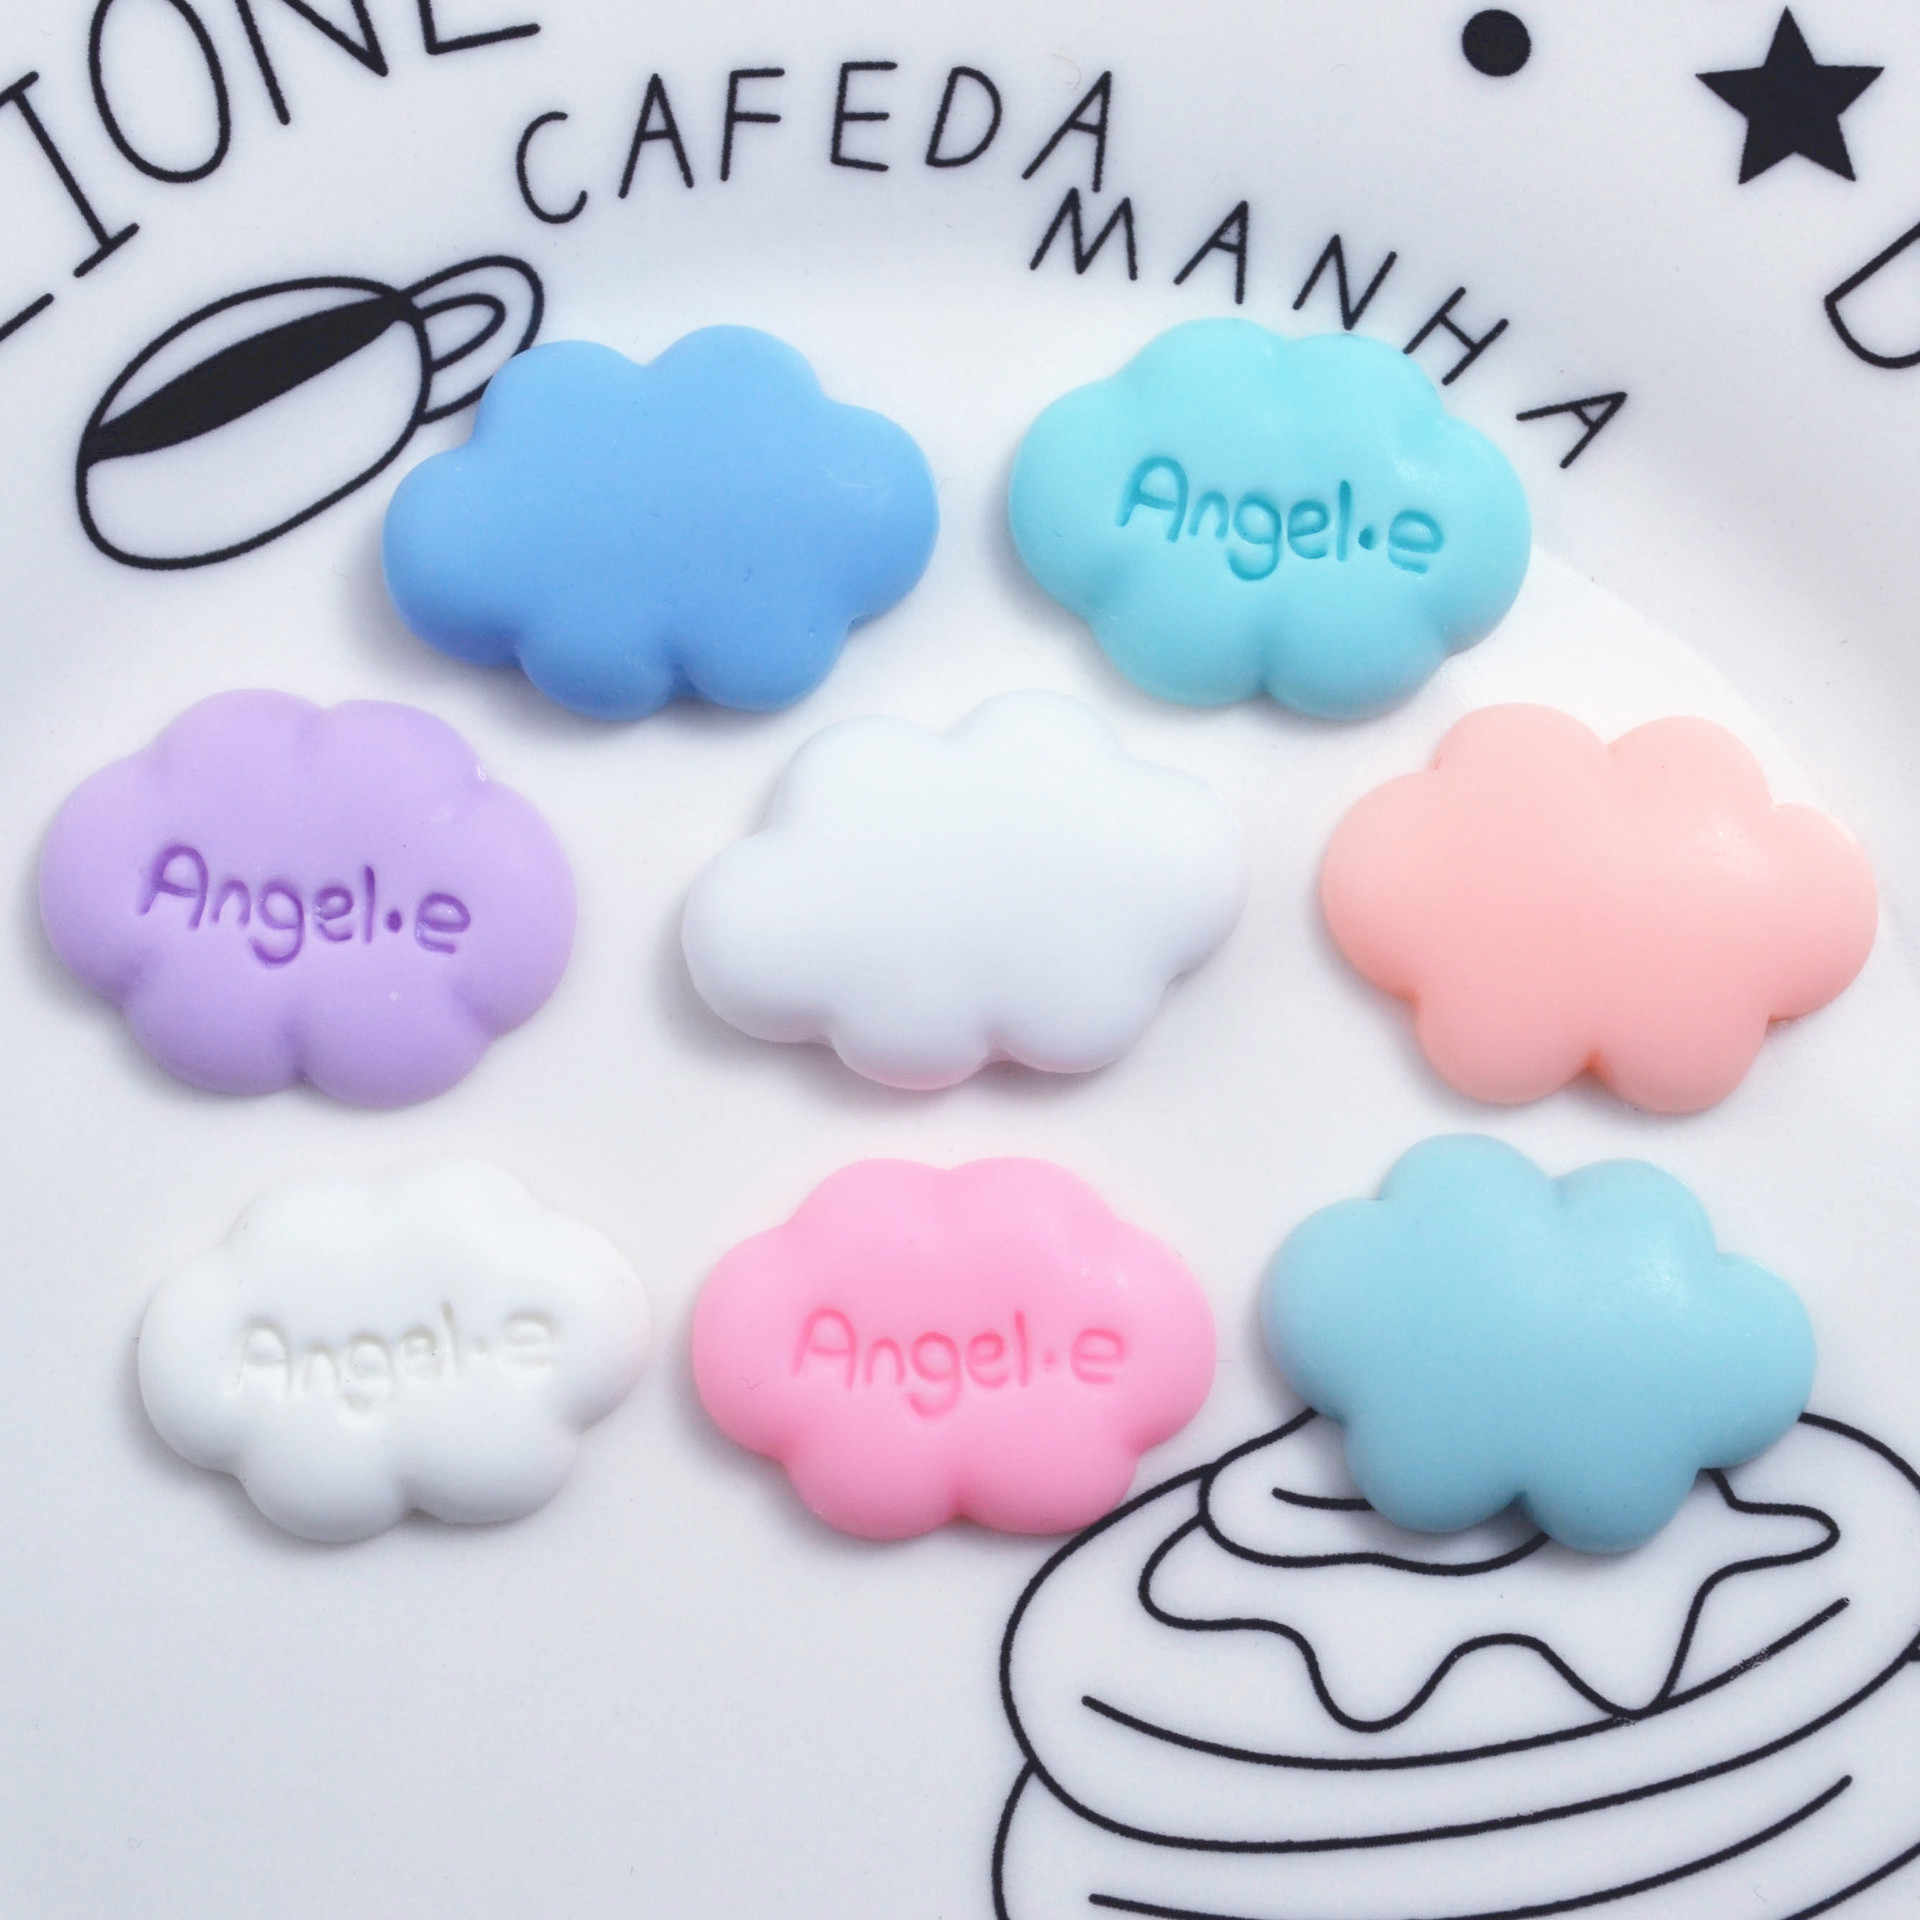 10pcs Cloud Angel Slime Charms Resin Toys Plasticine Slime Accessories Beads Making Supplies For DIY Scrapbooking Crafts